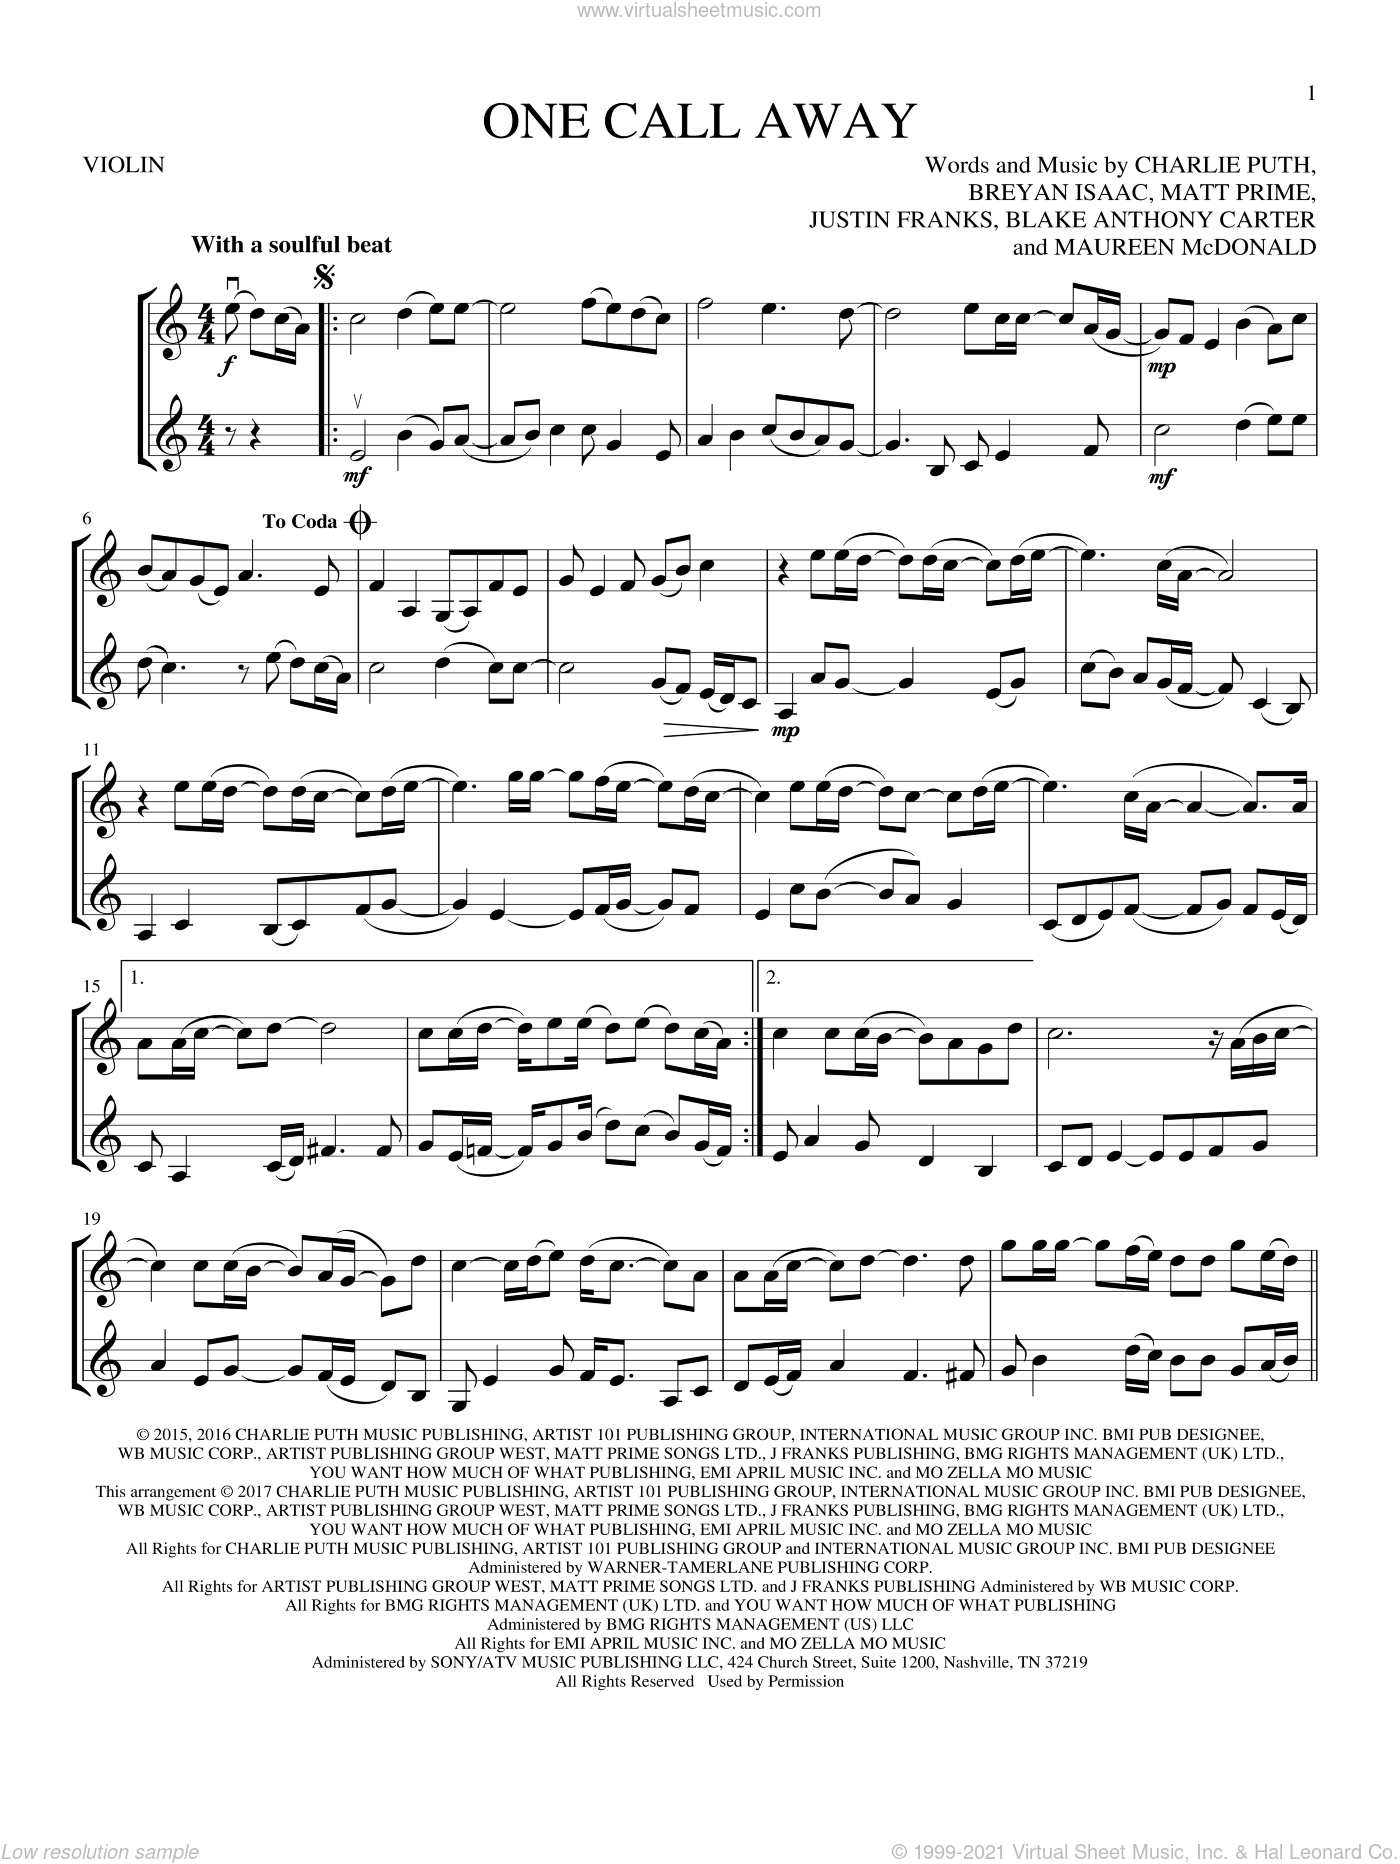 One Call Away sheet music for two violins (duets, violin duets) by Charlie Puth, Blake Anthony Carter, Breyan Isaac, Justin Franks, Matt Prime and Maureen McDonald, wedding score, intermediate skill level